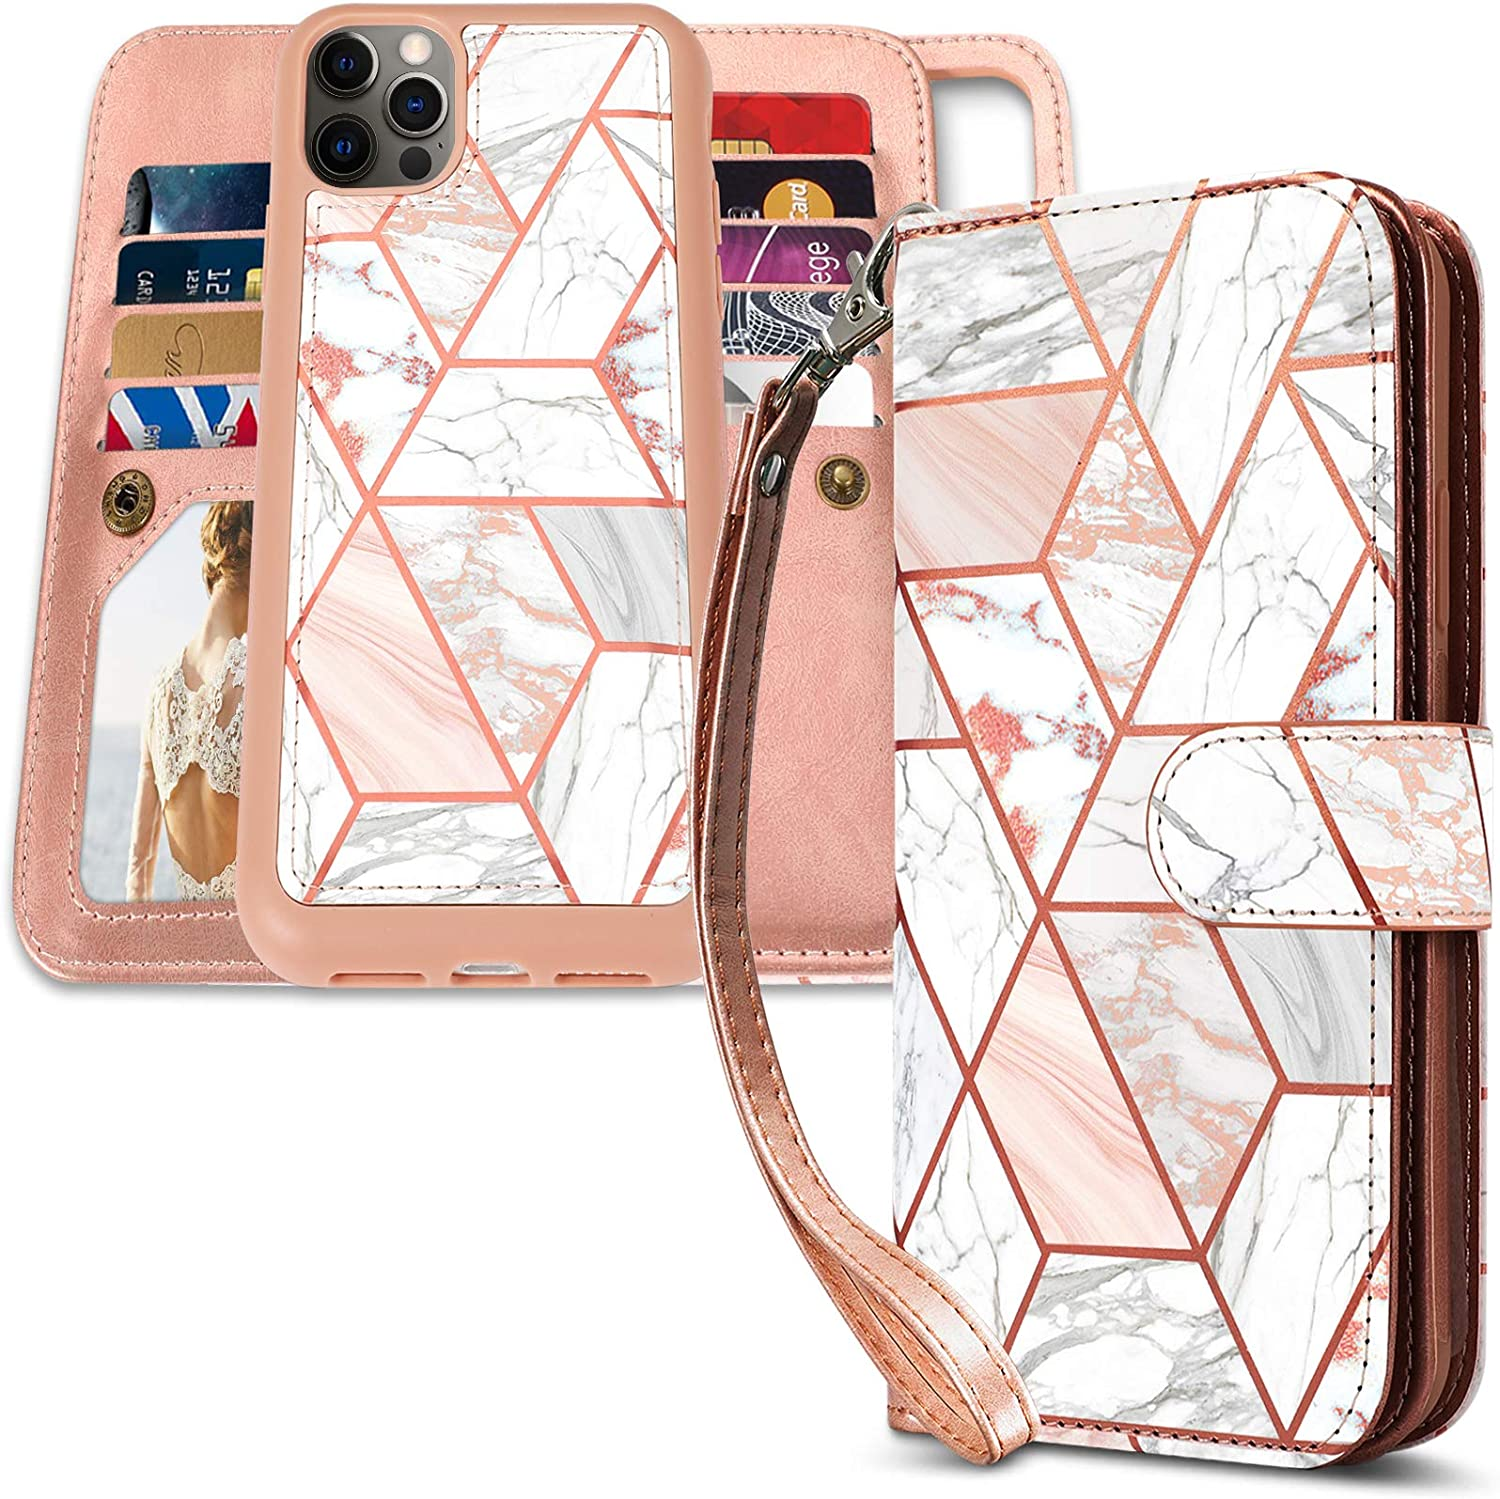 CASEOWL Case Compatible with iPhone 12 Pro Max Wallet Case Magnetic Detachable with 9 Card Slots Holder, Hand Strap, 2 in 1 Folio Flip Premium PU Leather Lanyard Wallet Case 6.7 inch (Marble)